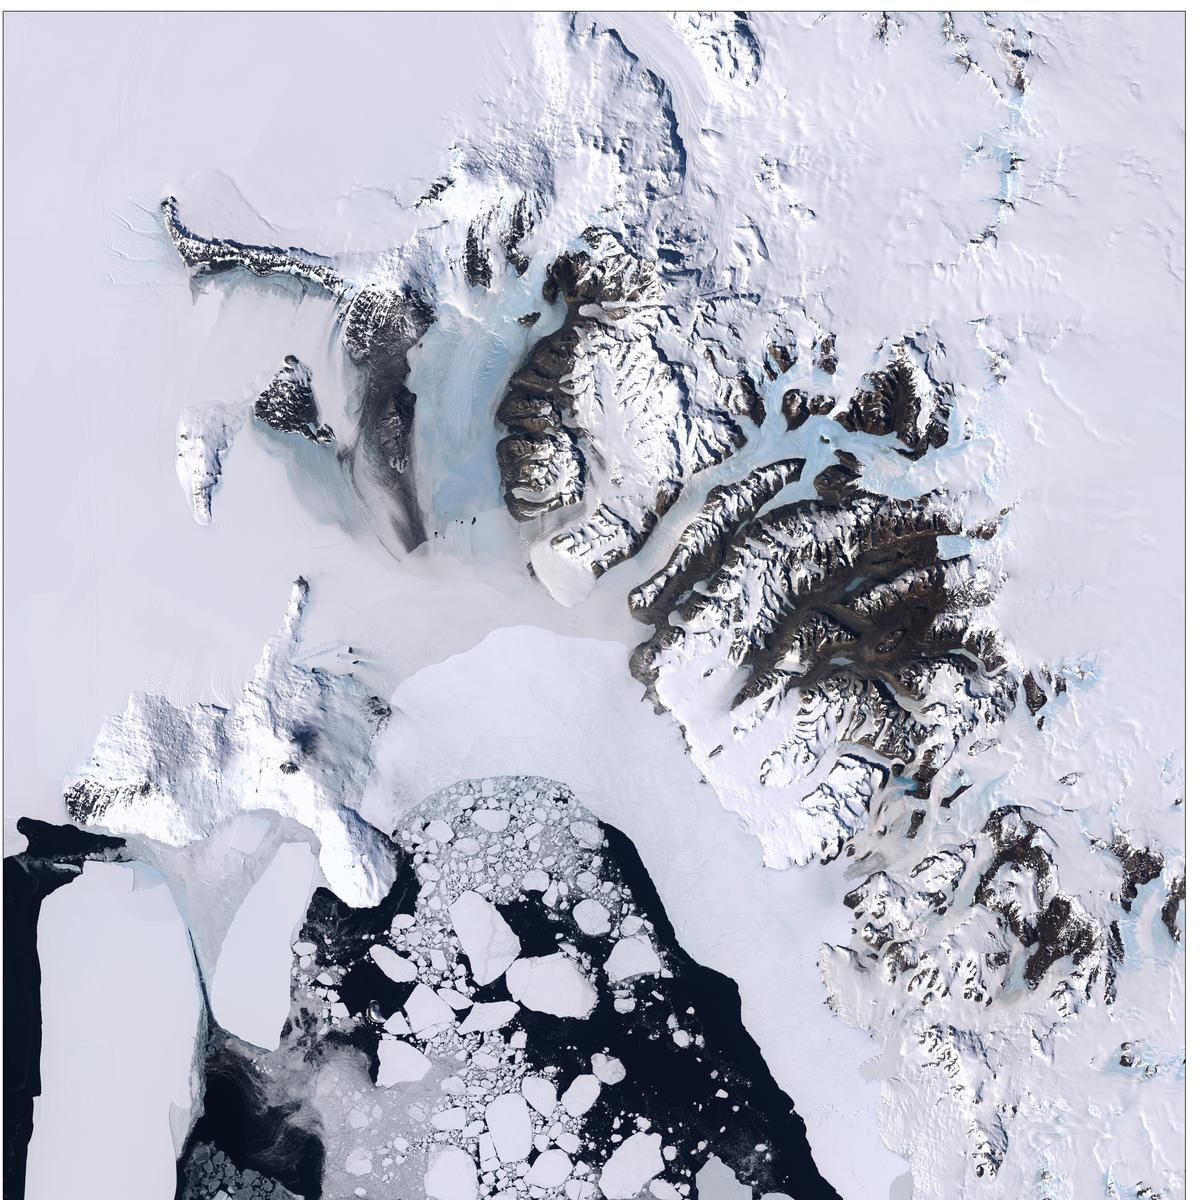 [FAQ] Does the USGS have photographs of features in Antarctica?  https://t.co/cF56b2l9sH #Antarctica #landsat https://t.co/RY7gaUcOko